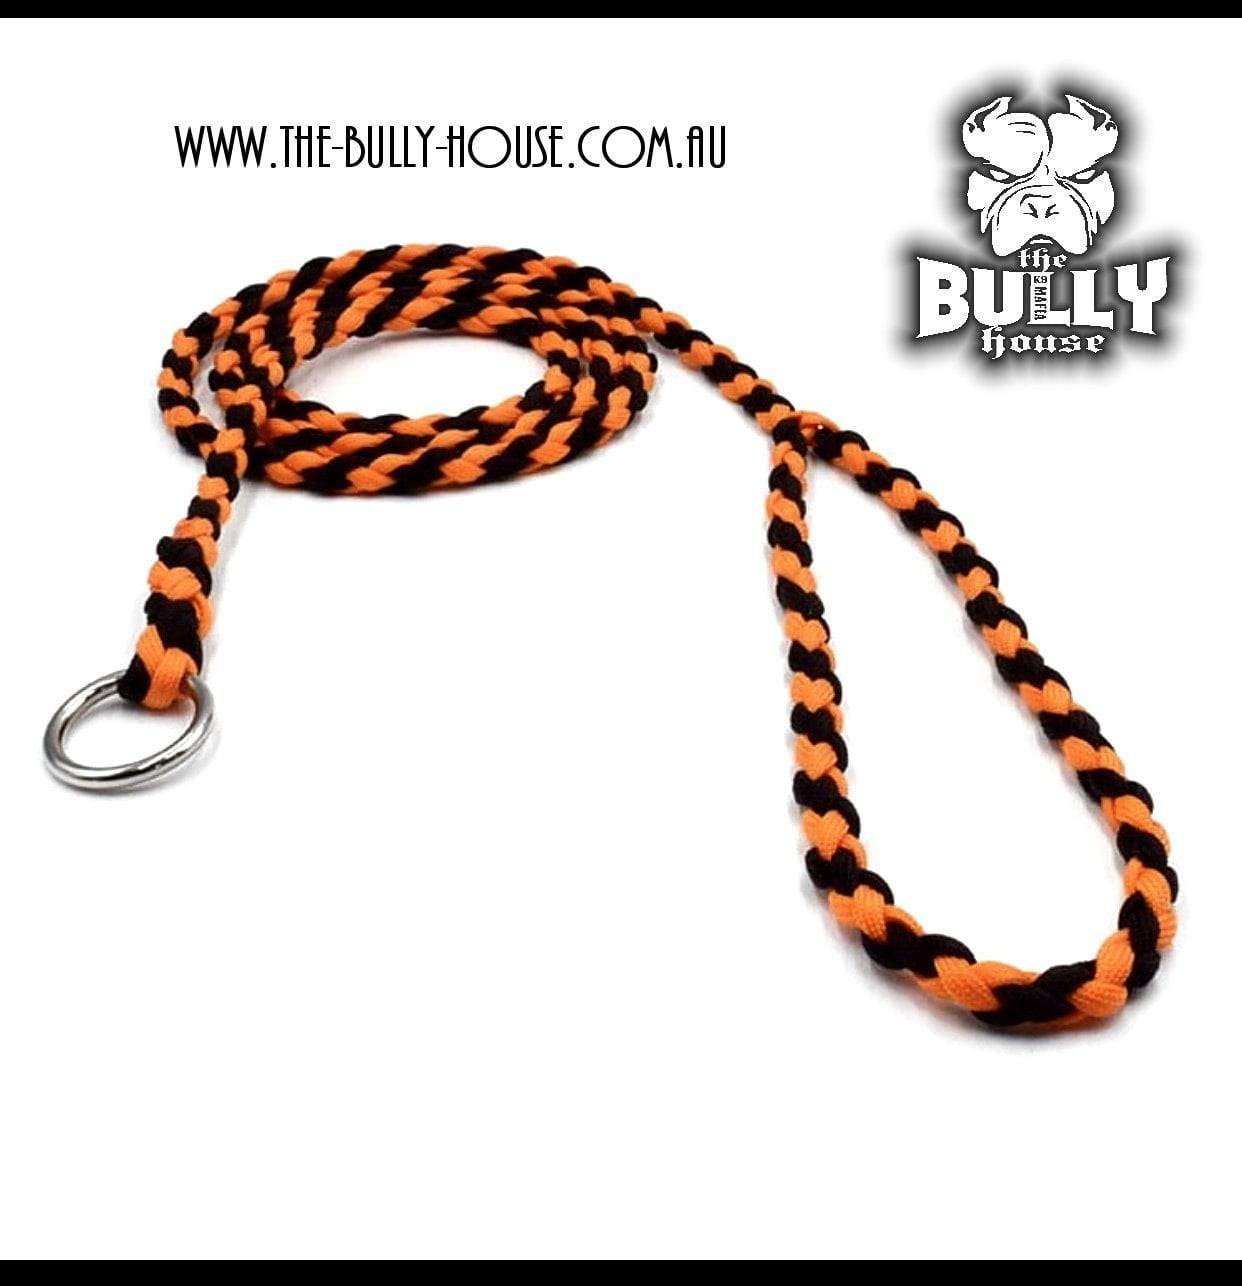 Paracord SLIP LEAD / LEASH (Black and Orange)